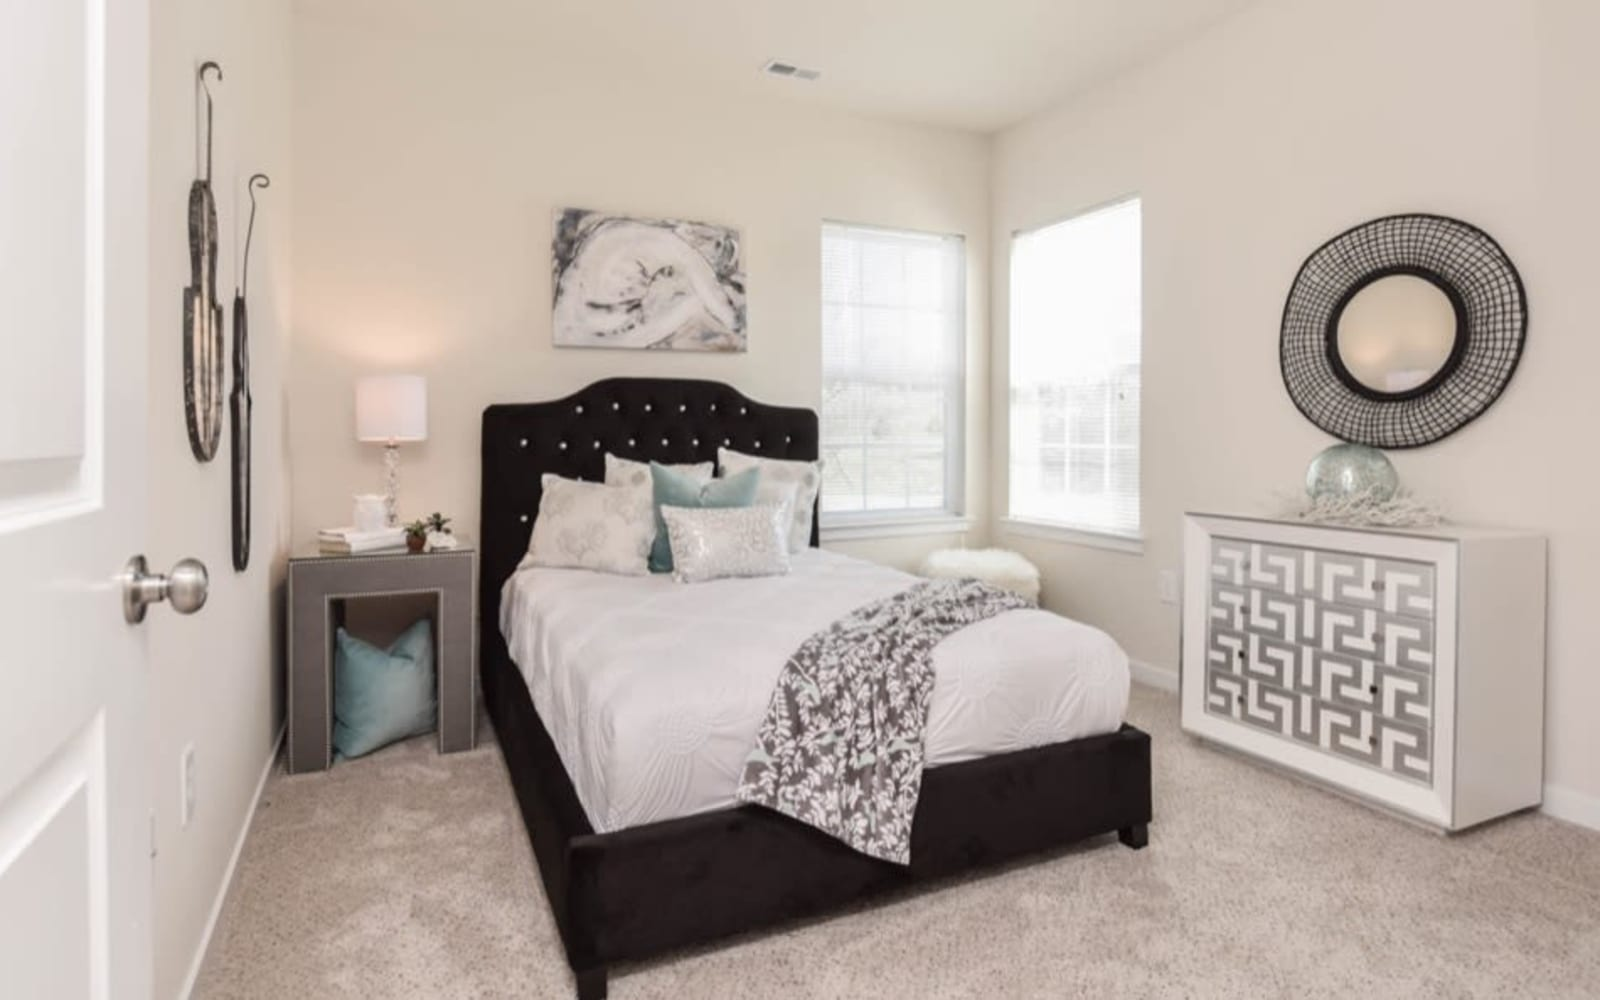 Bedrooms with natural light at Aventura at Towne Centre in Ellisville, Missouri.